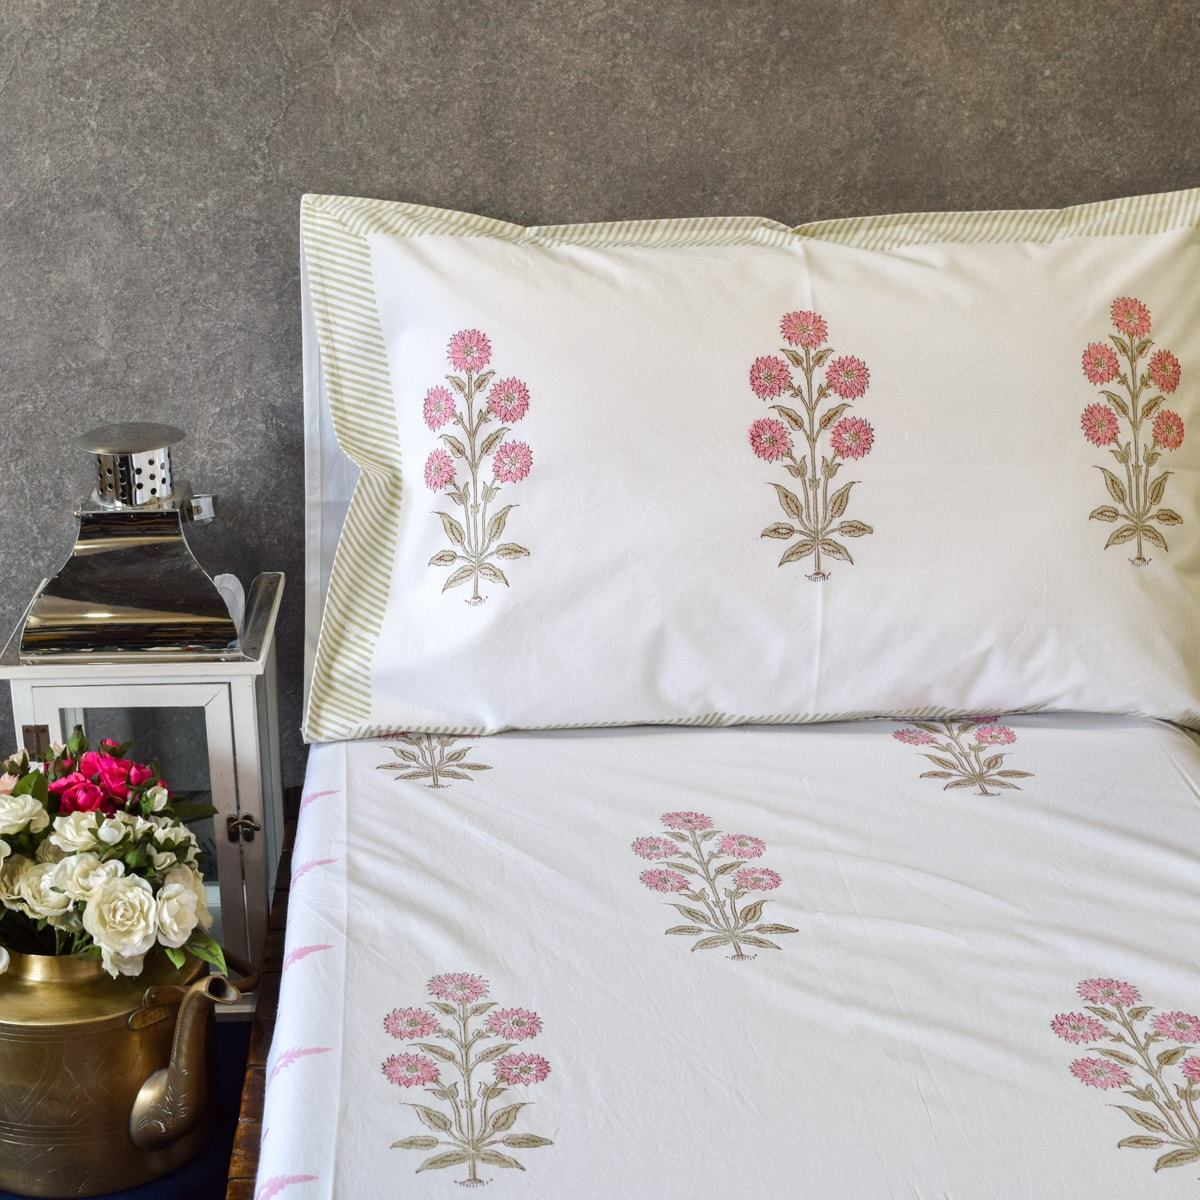 Blush Chrysanth Floral Pattern Hand Block Print Bed Sheet